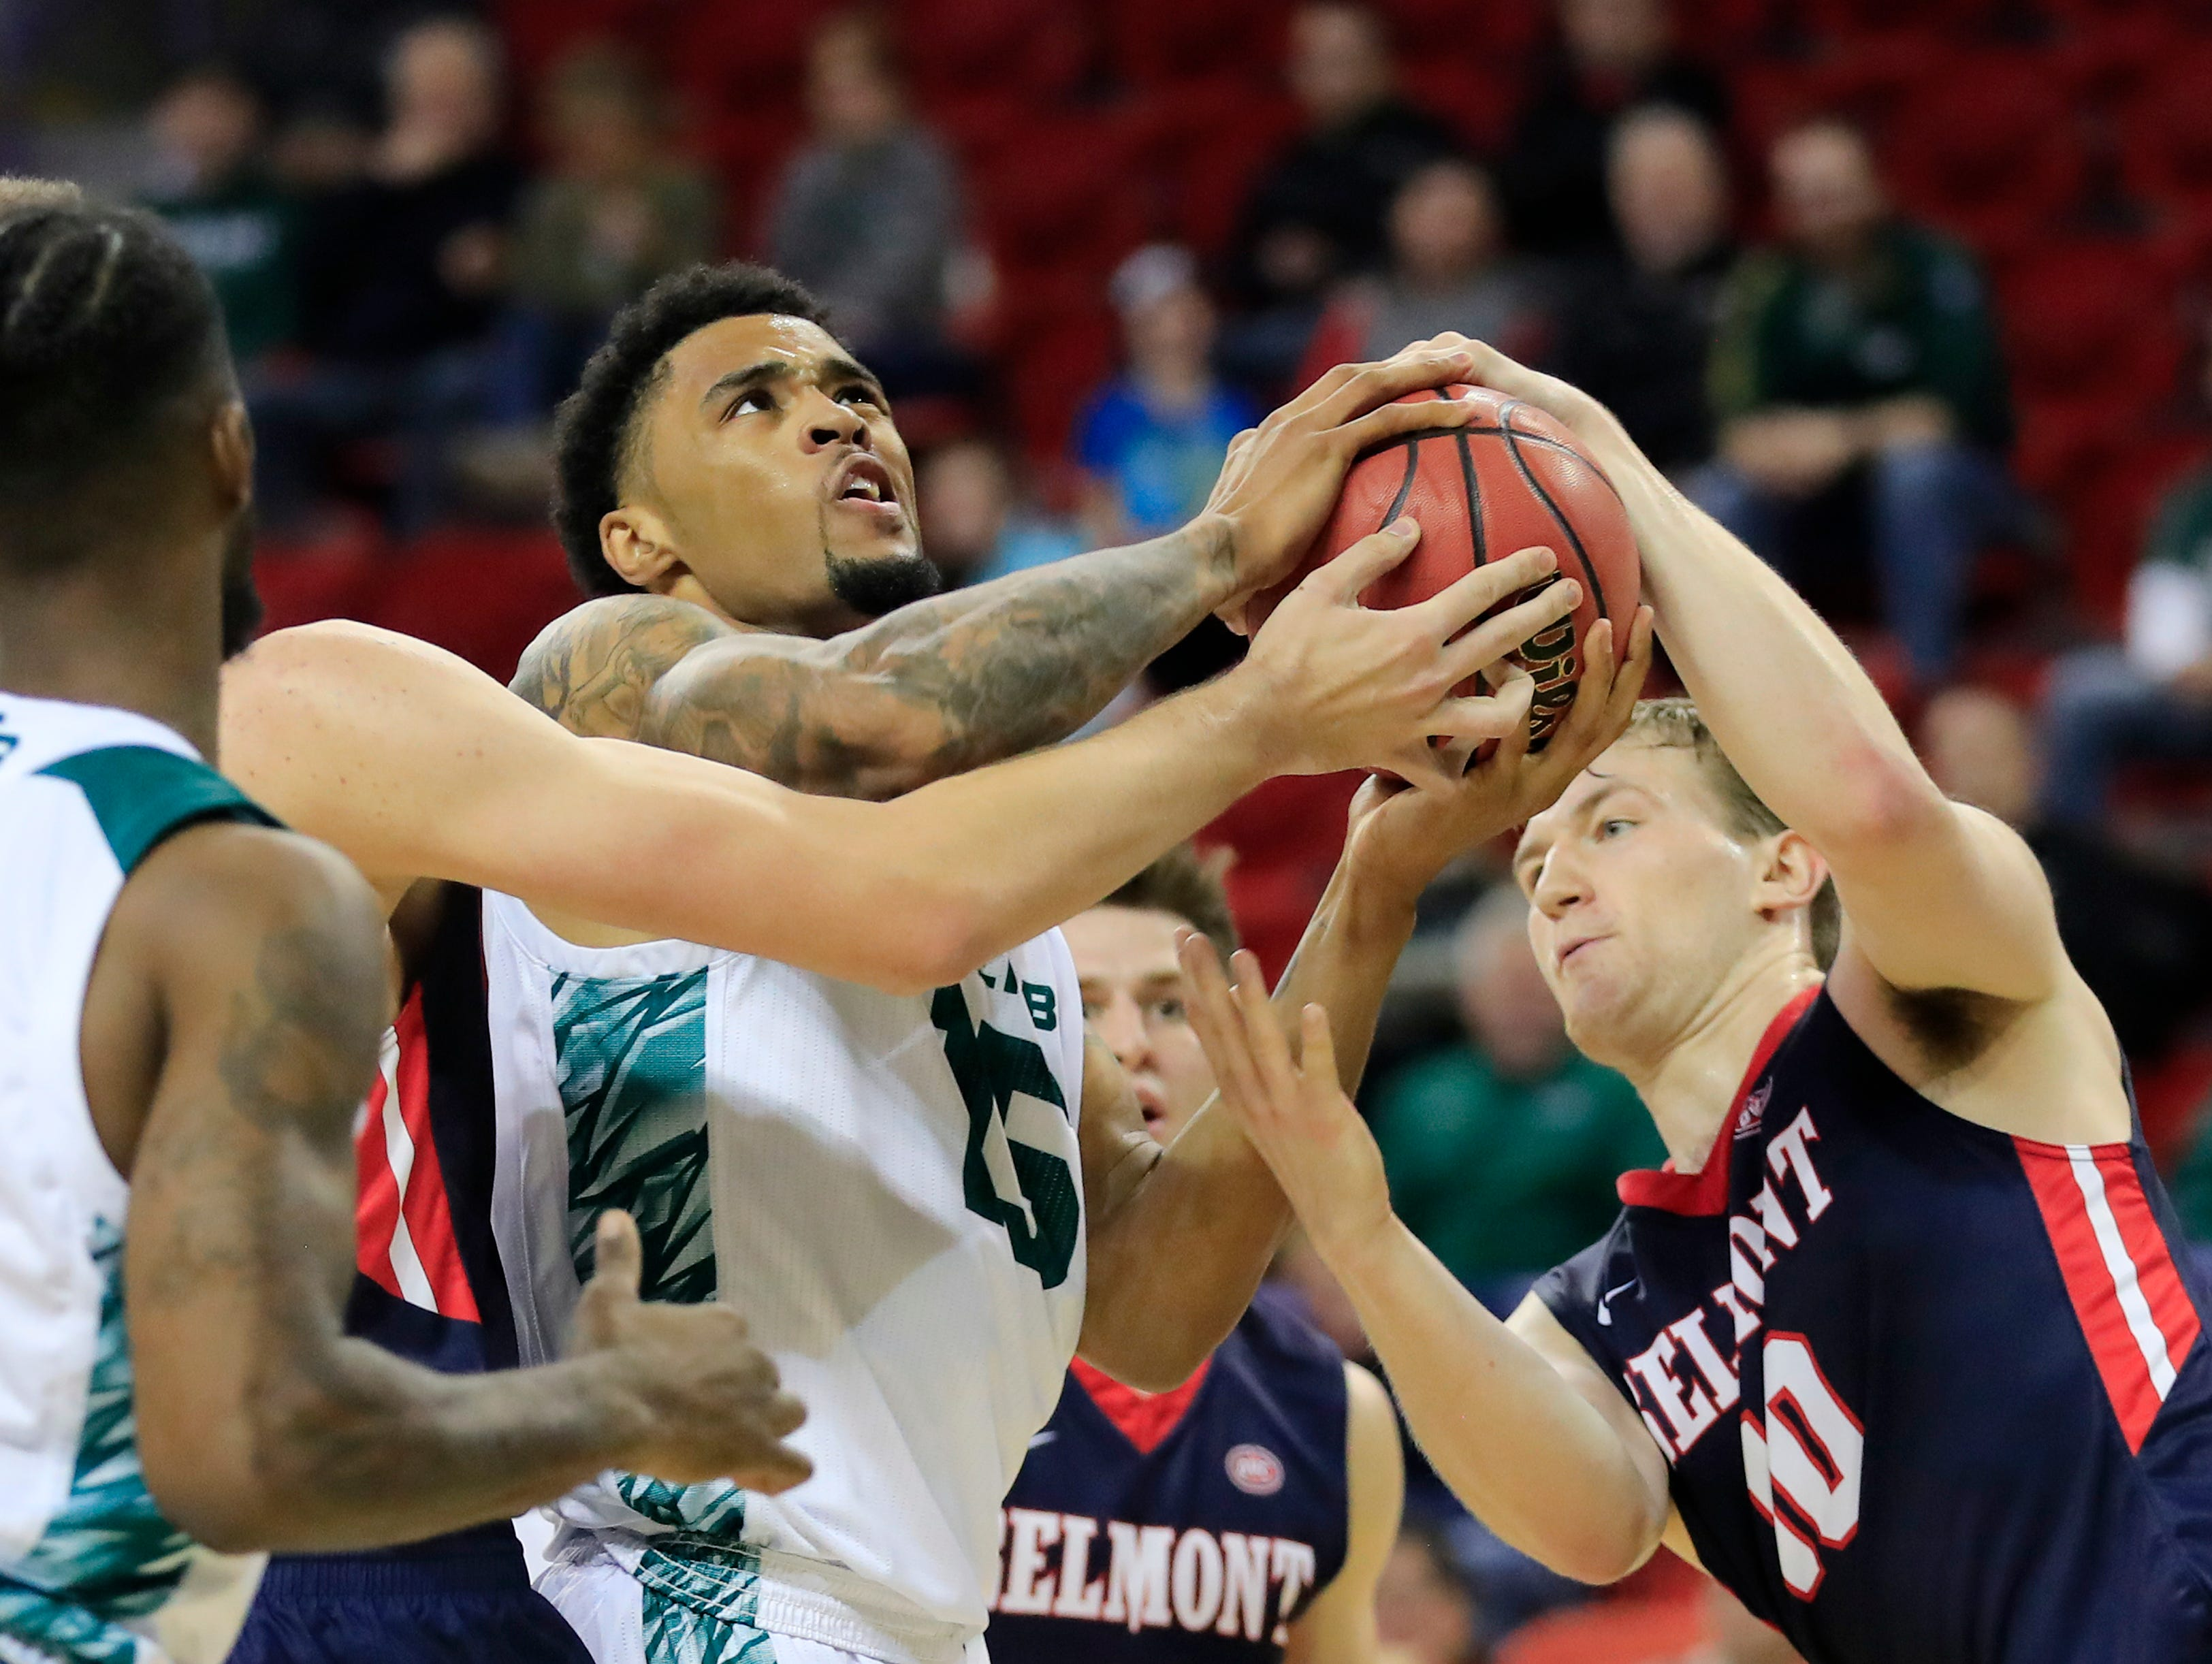 Green Bay Phoenix forward Manny Patterson (15) and Belmont Bruins forward Caleb Hollander (10) compete for a rebound in a NCAA basketball game at the Resch Center on Saturday, December 1, 2018 in Ashwaubenon, Wis.